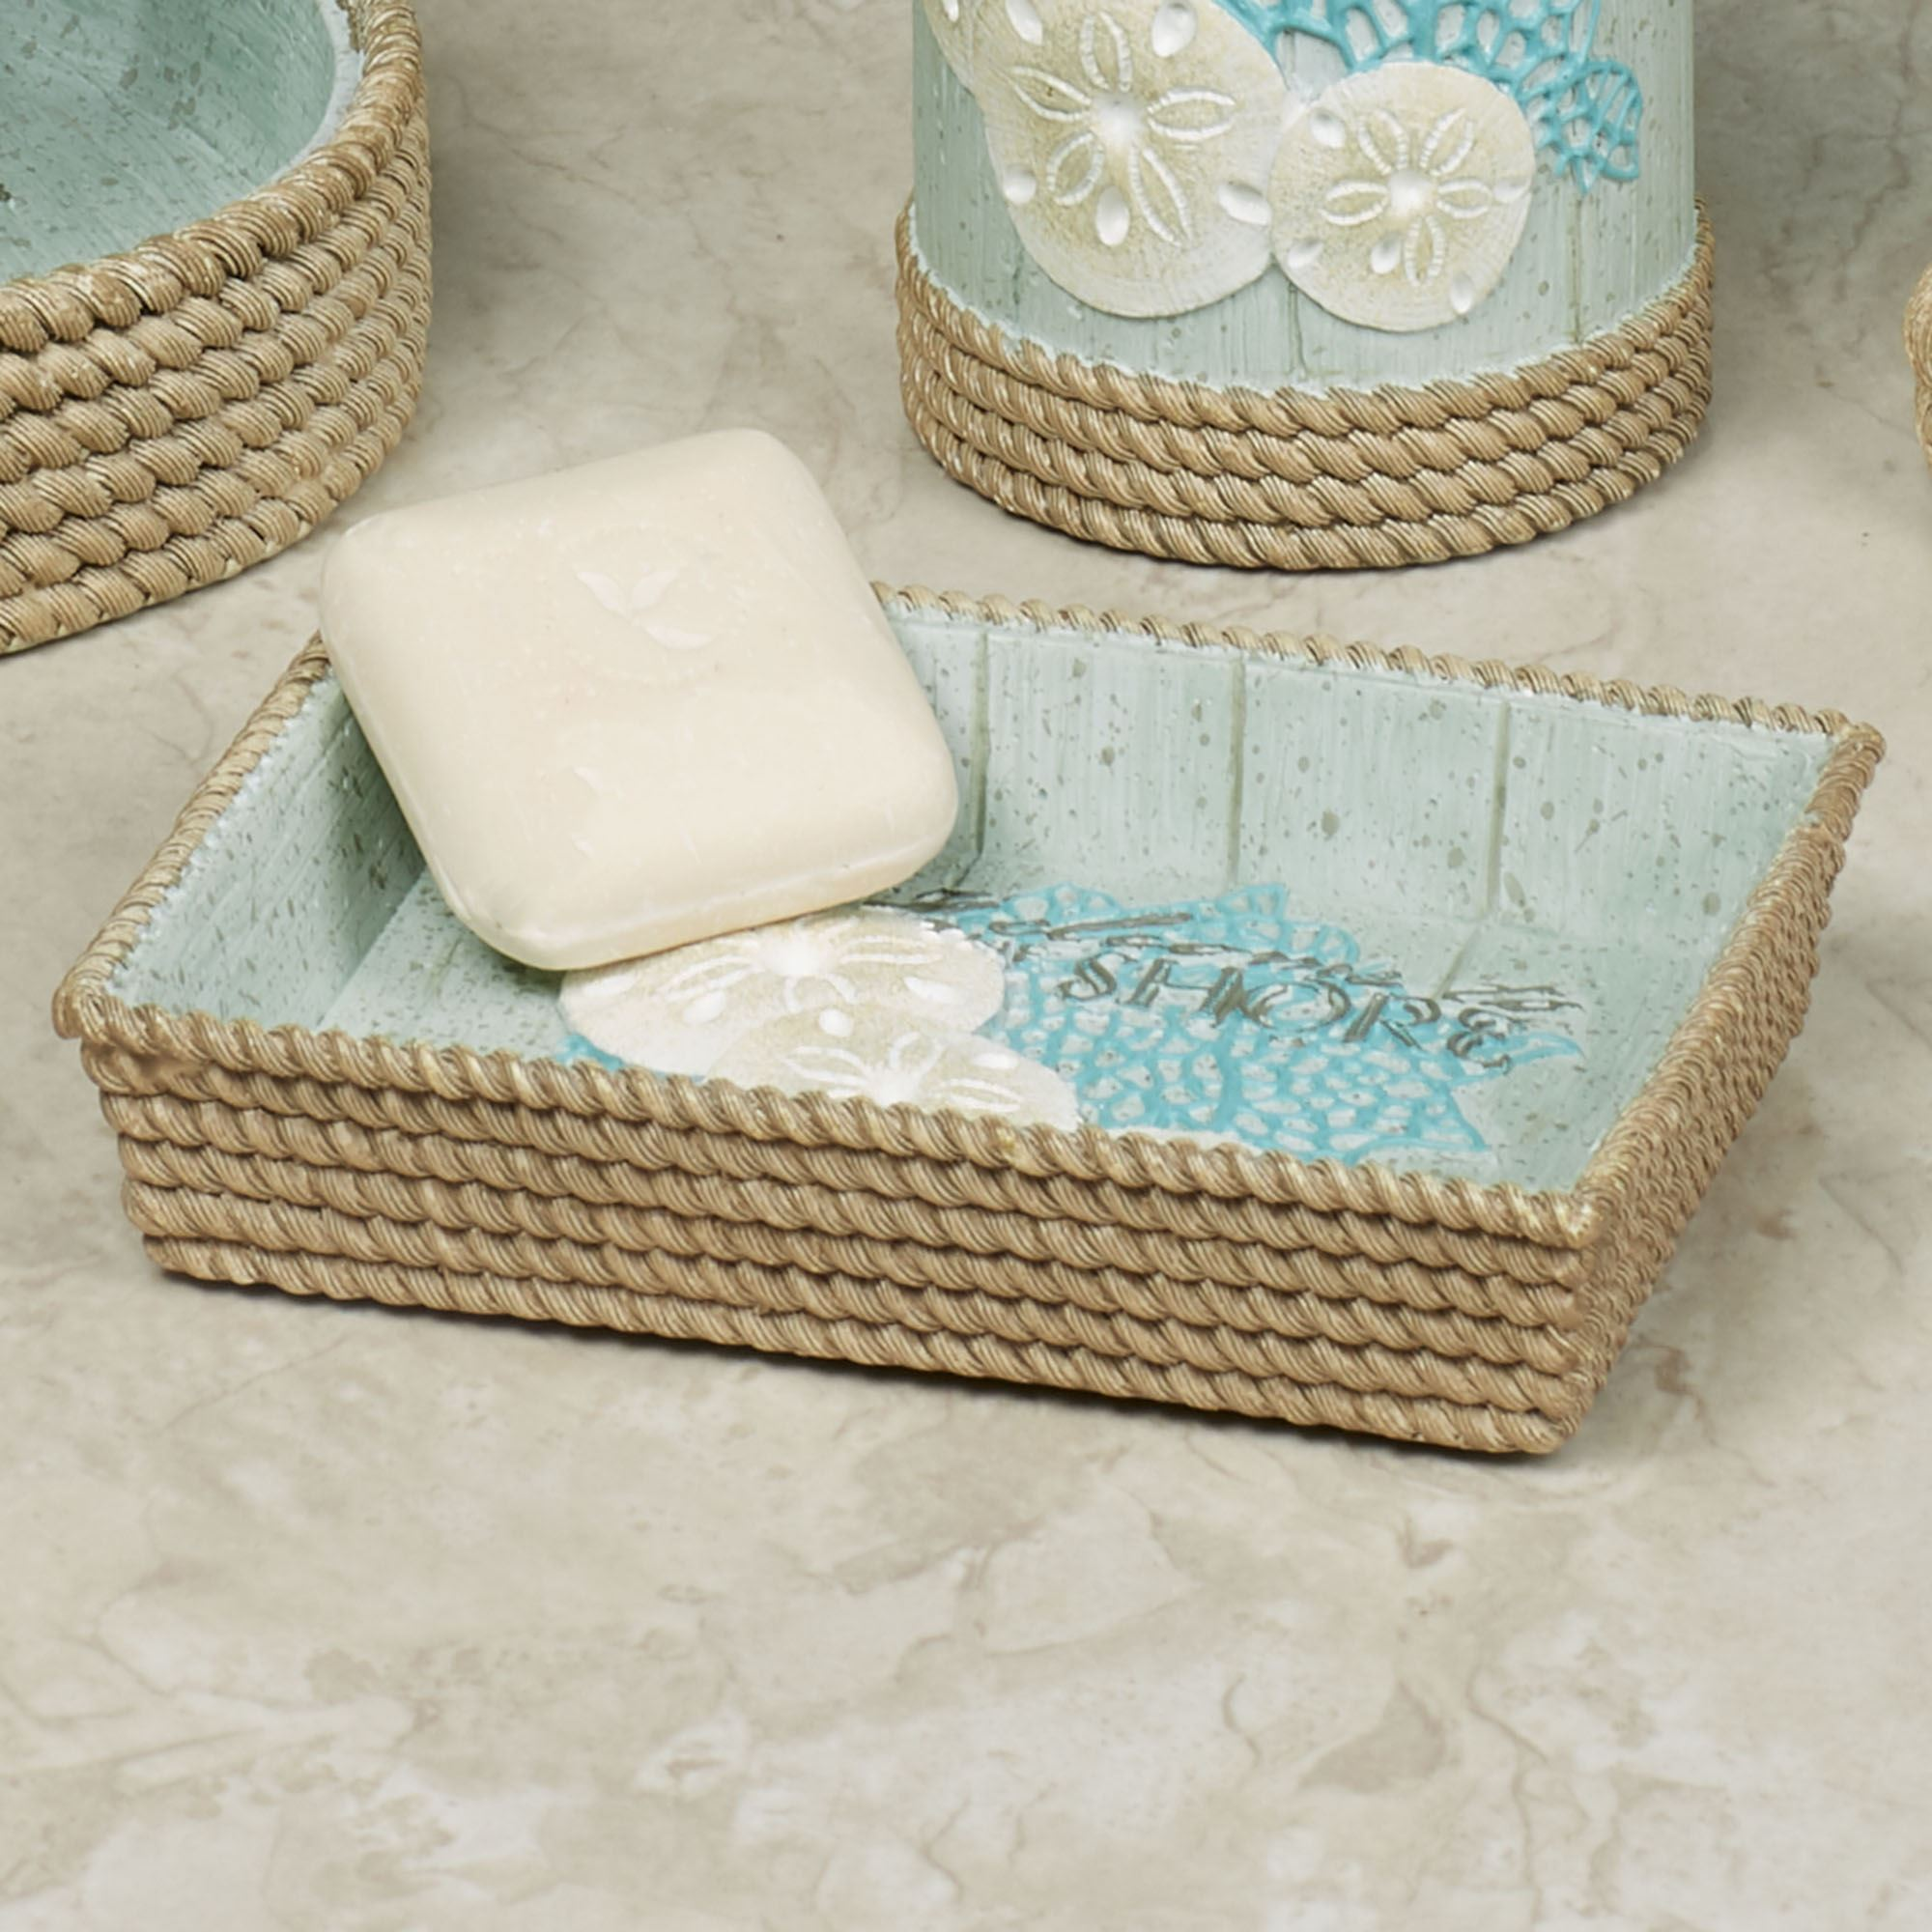 Beachcomber Coastal Bath Accessories